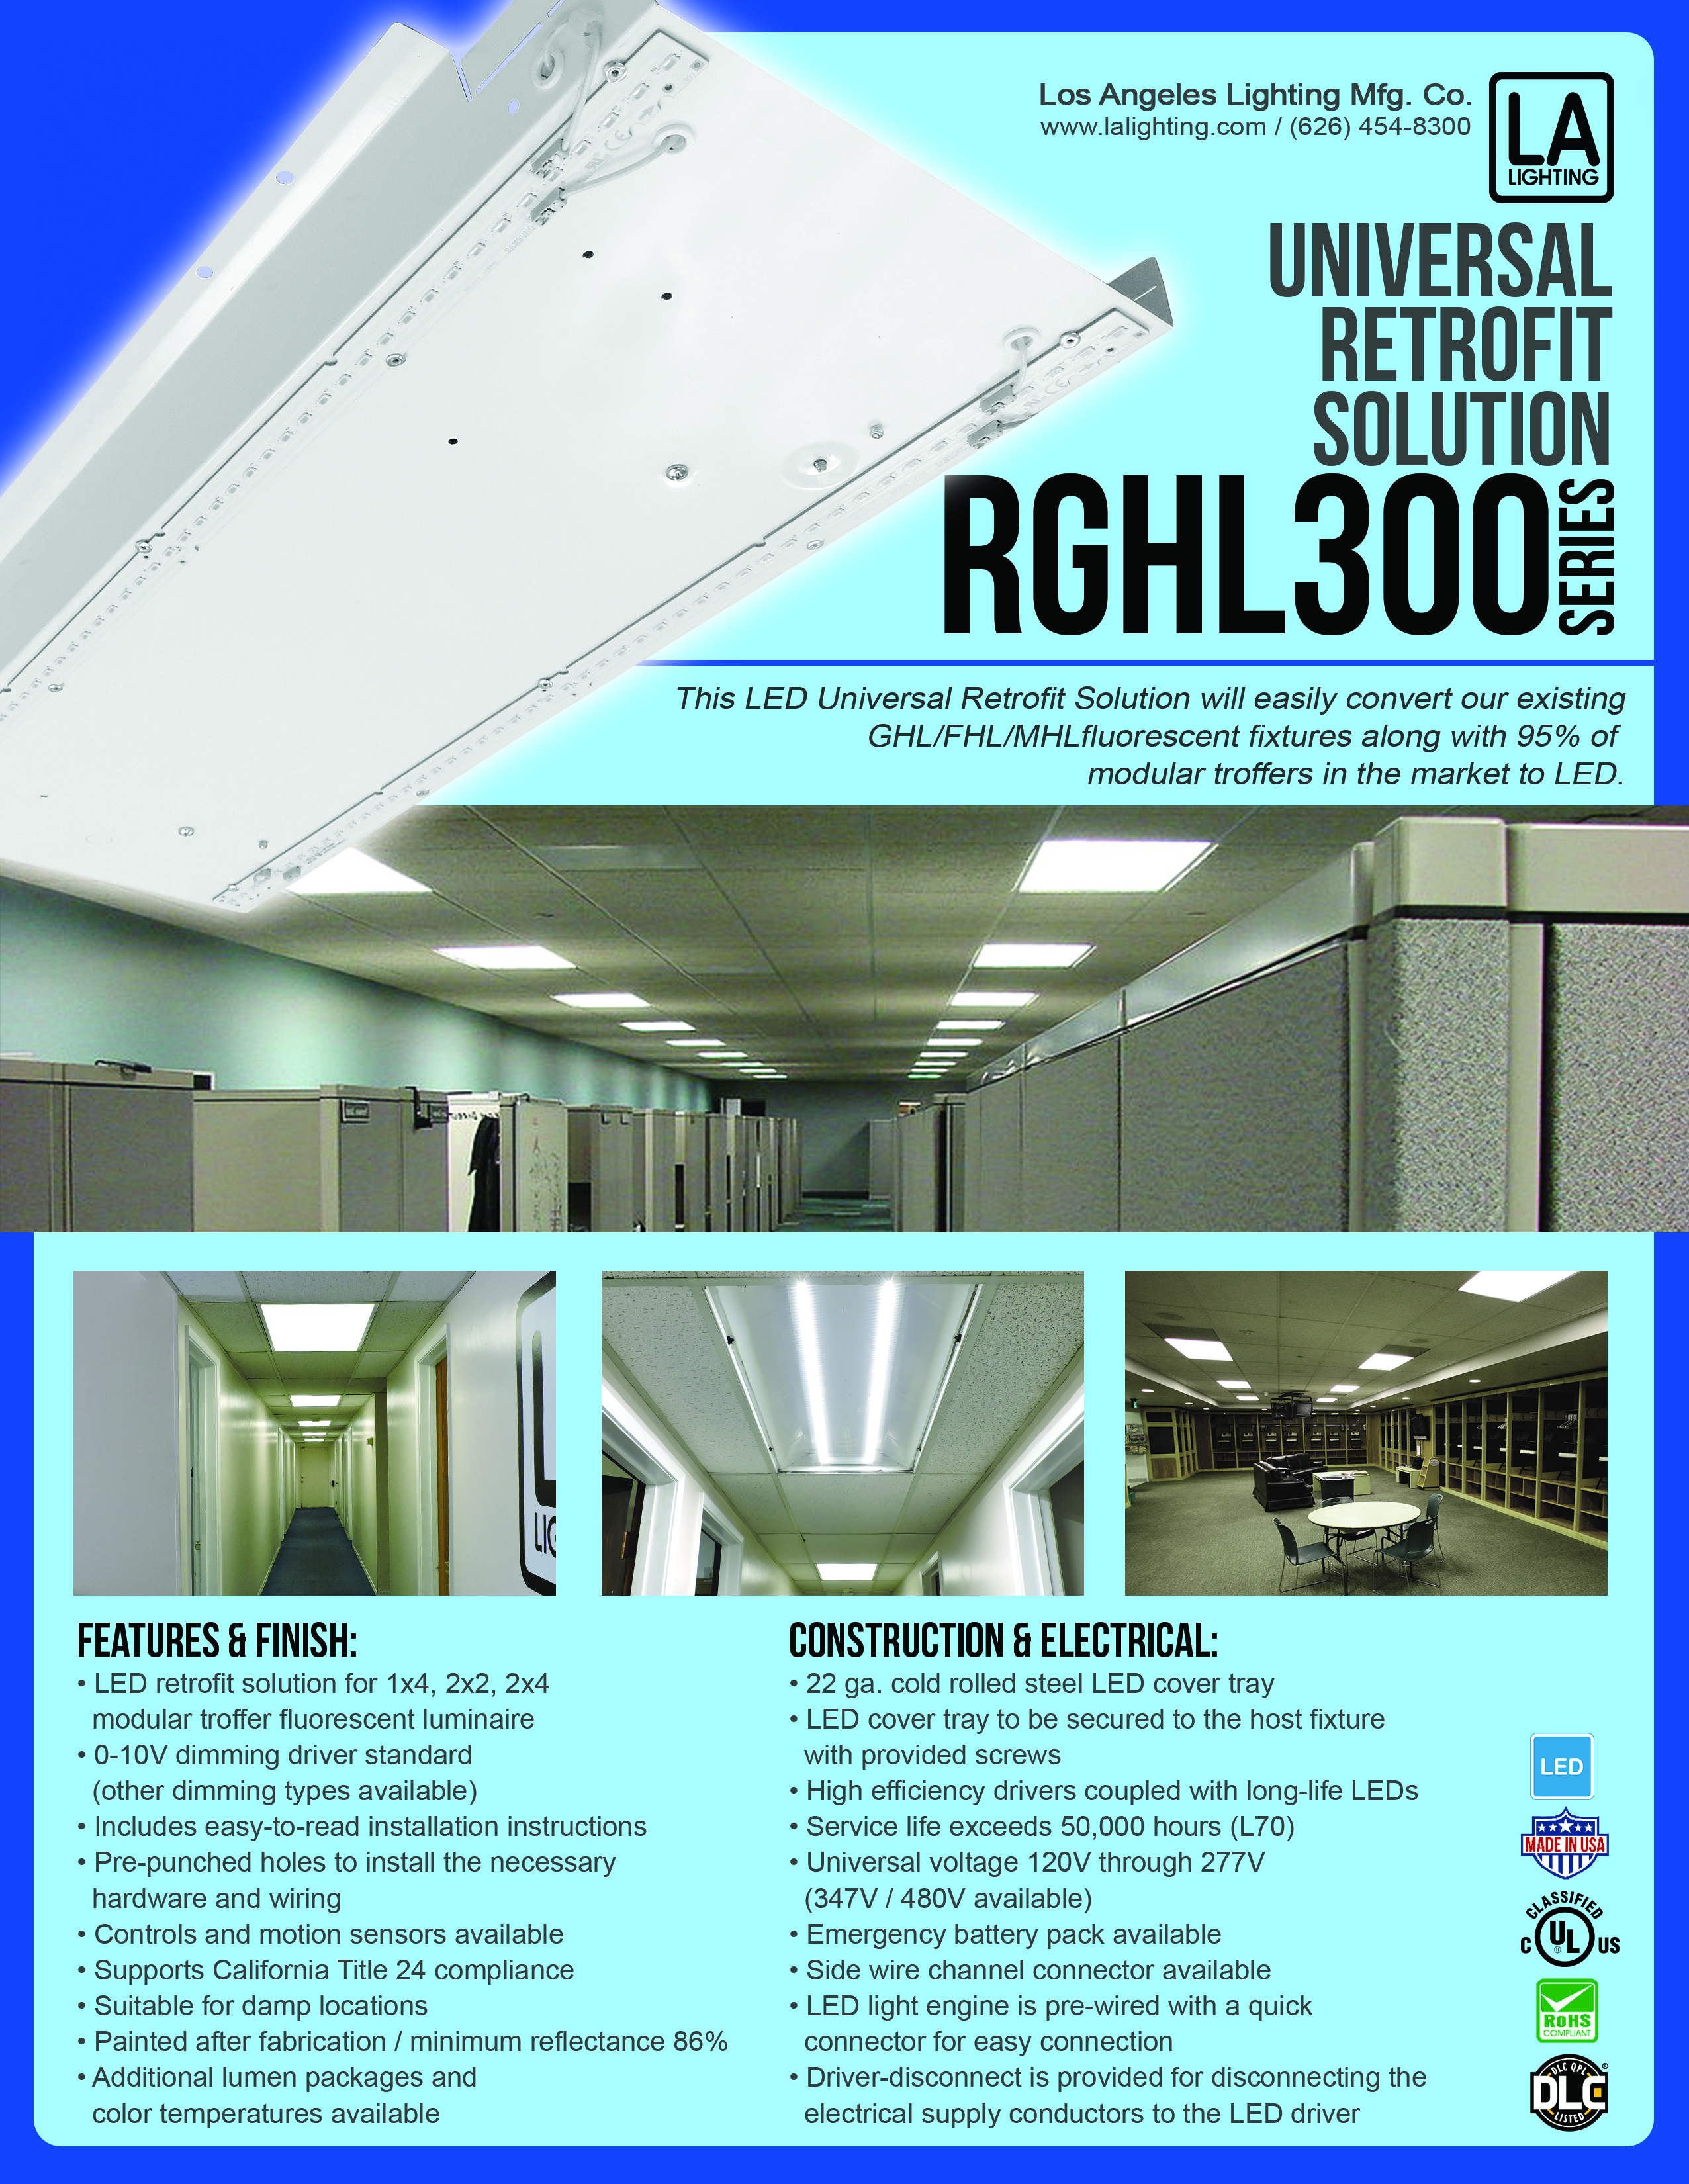 LED Luminaires Product Promos - L.A. Lighting